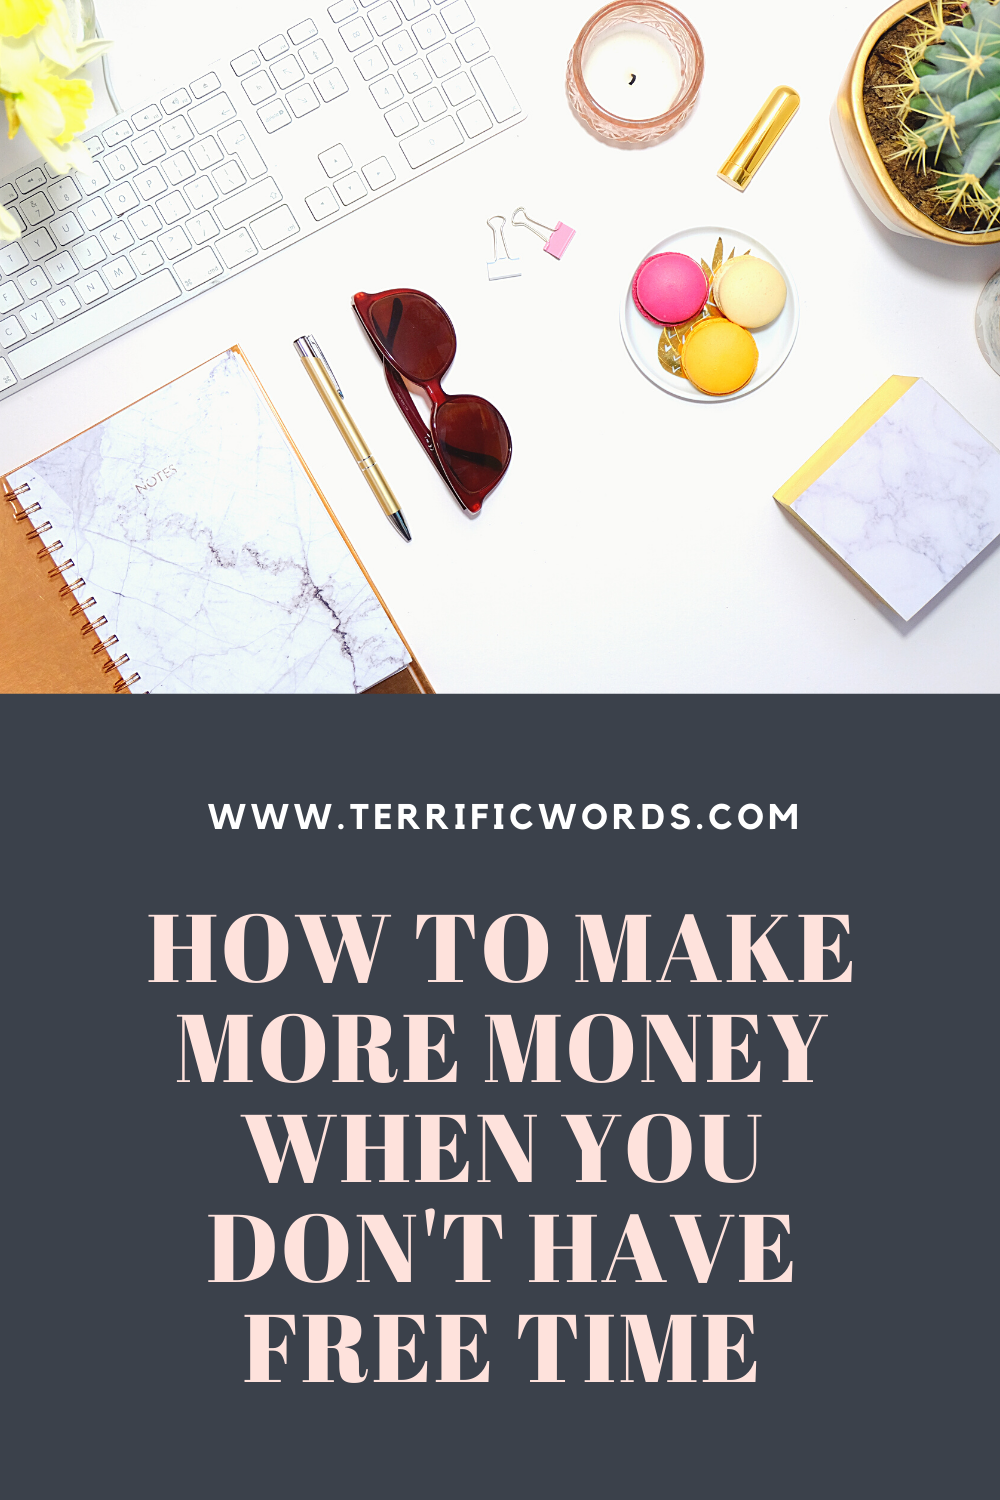 How to make more money when you don't have free time